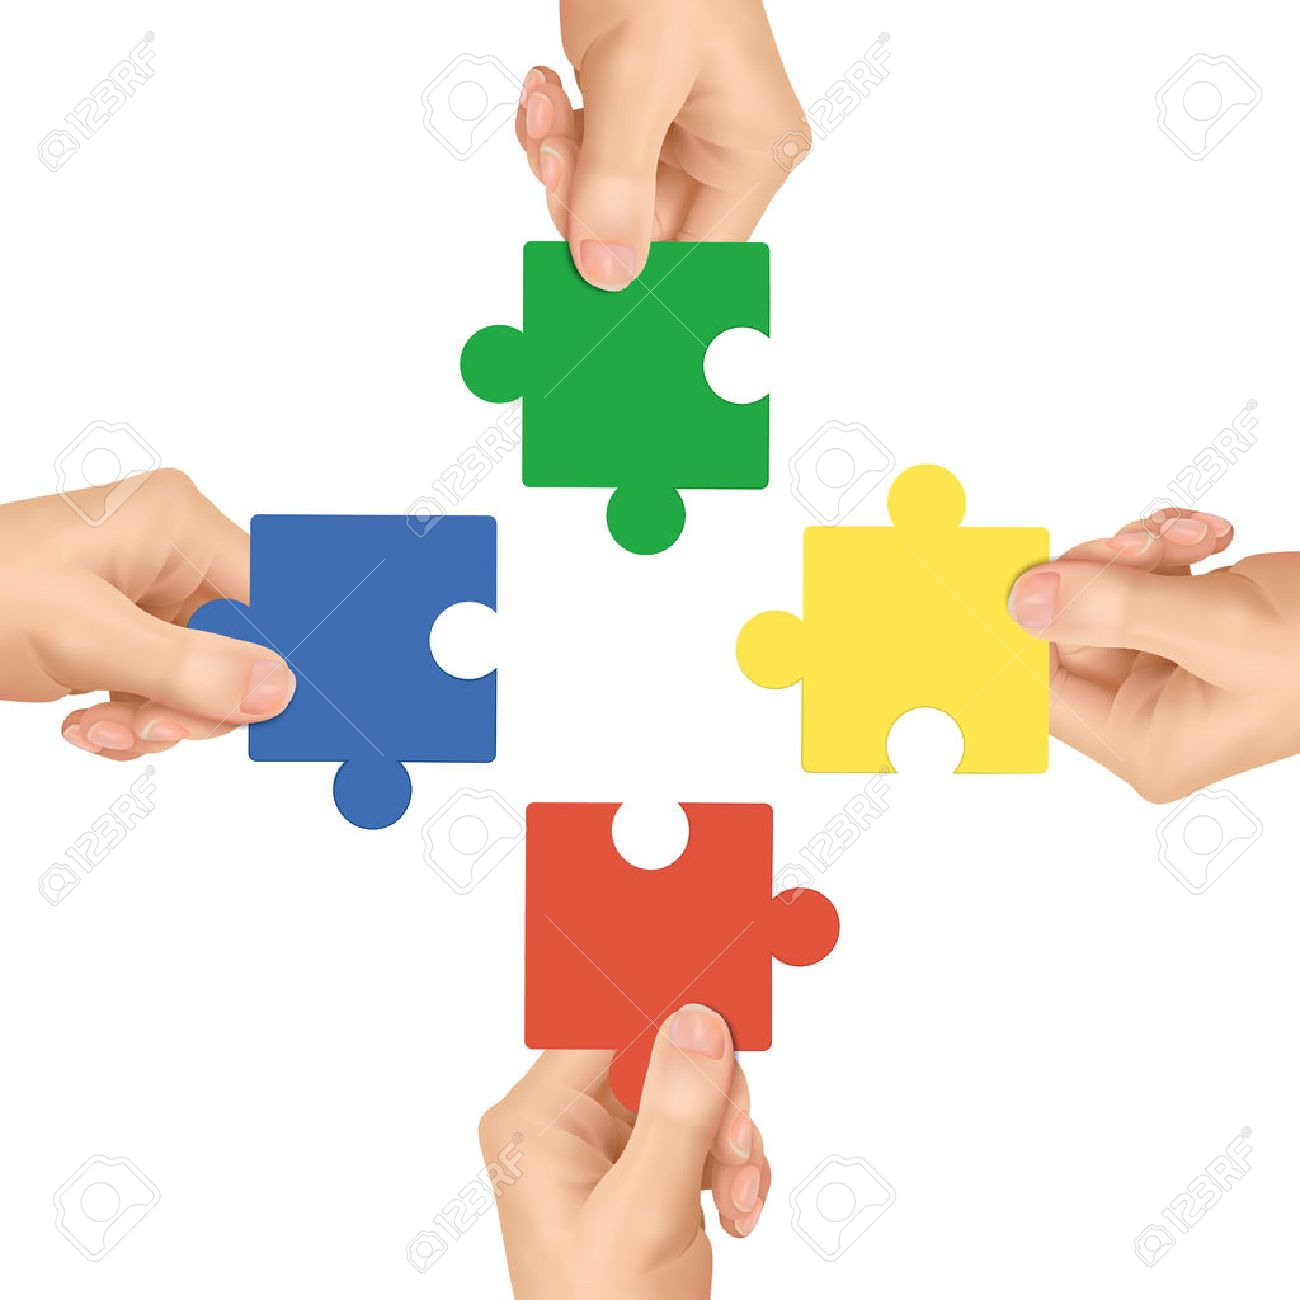 Cooperation Concept Hands Holding Jigsaw Pieces Over White 1300x1300